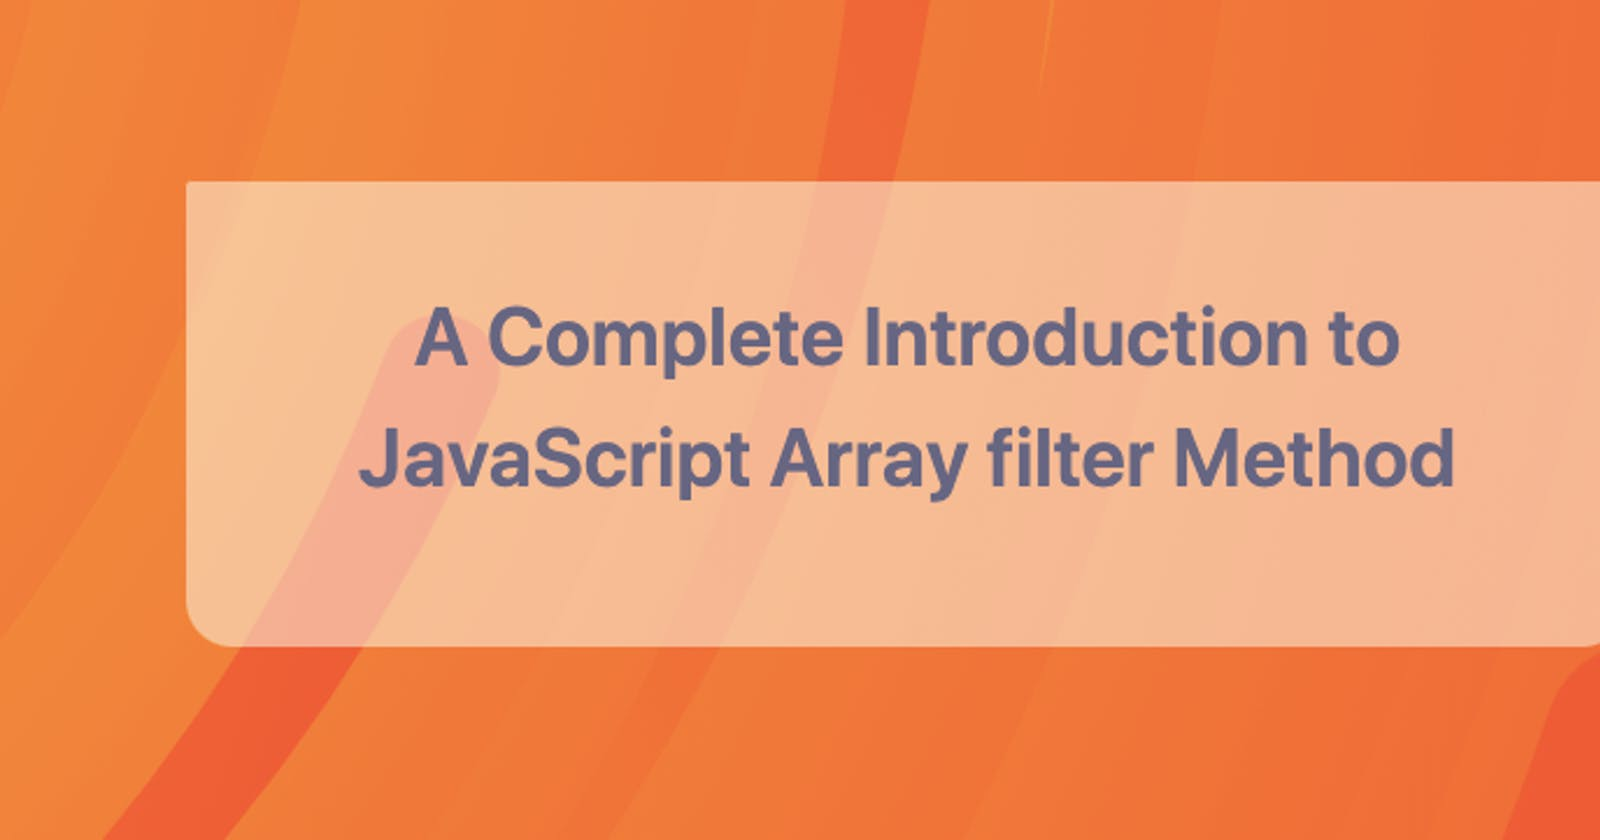 A Complete Introduction to JavaScript Array filter Method